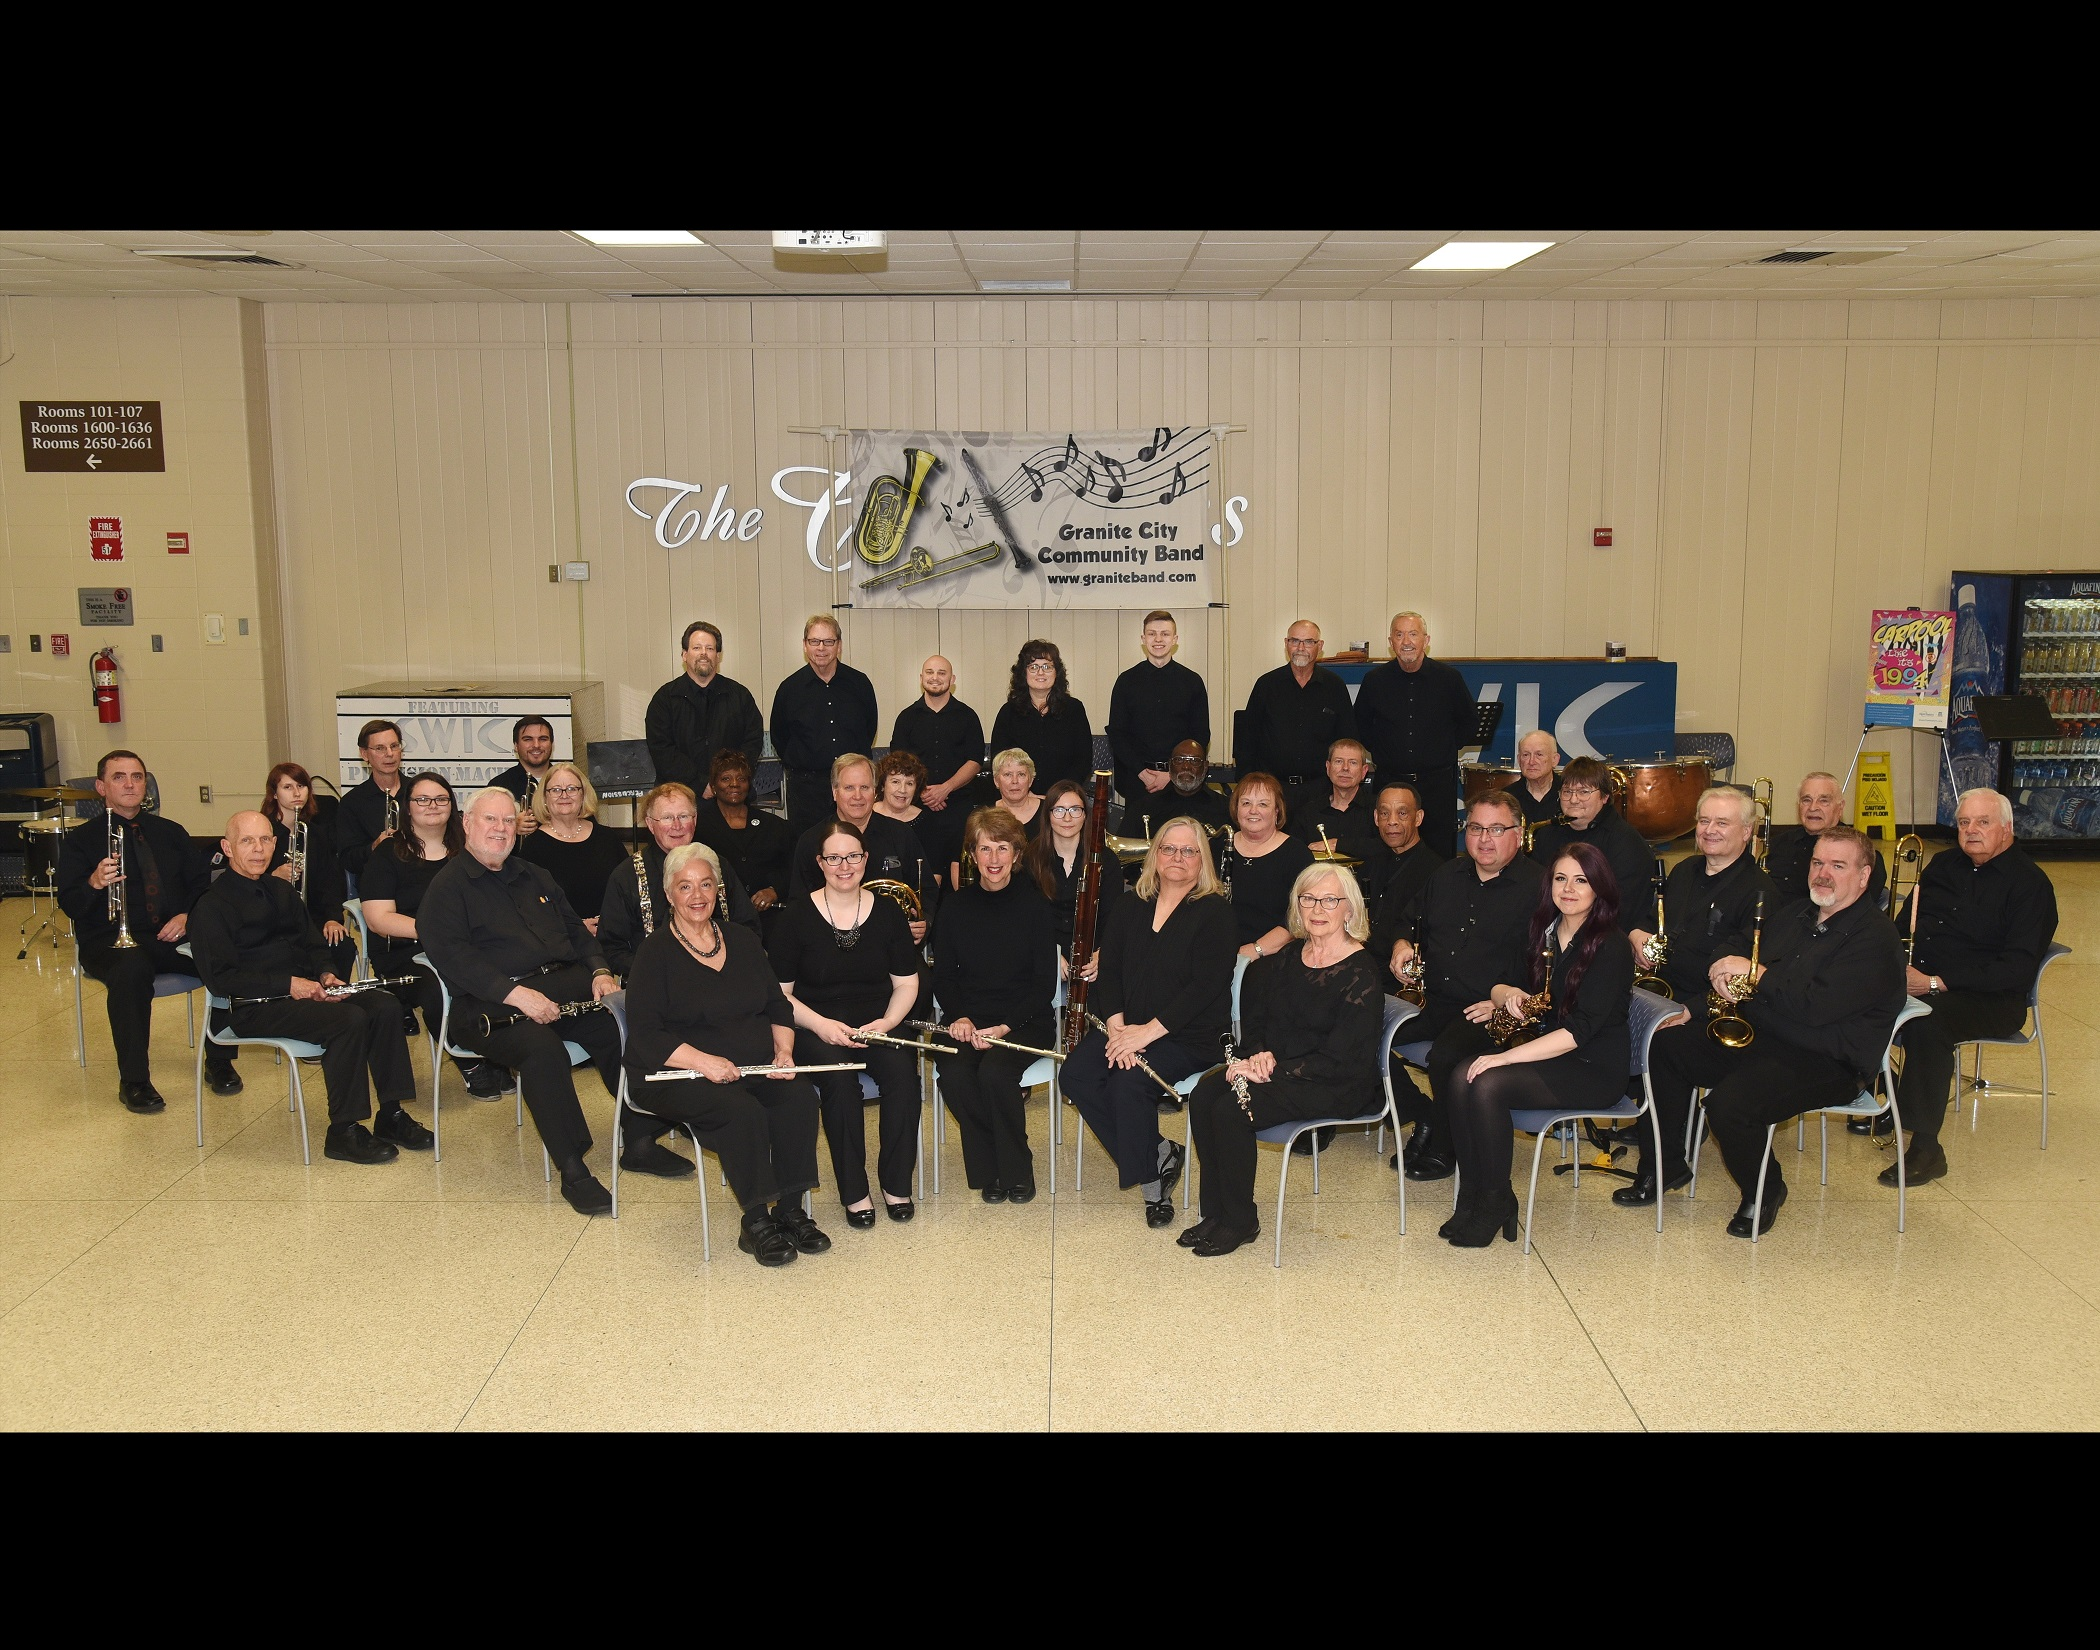 Granite City Community Band